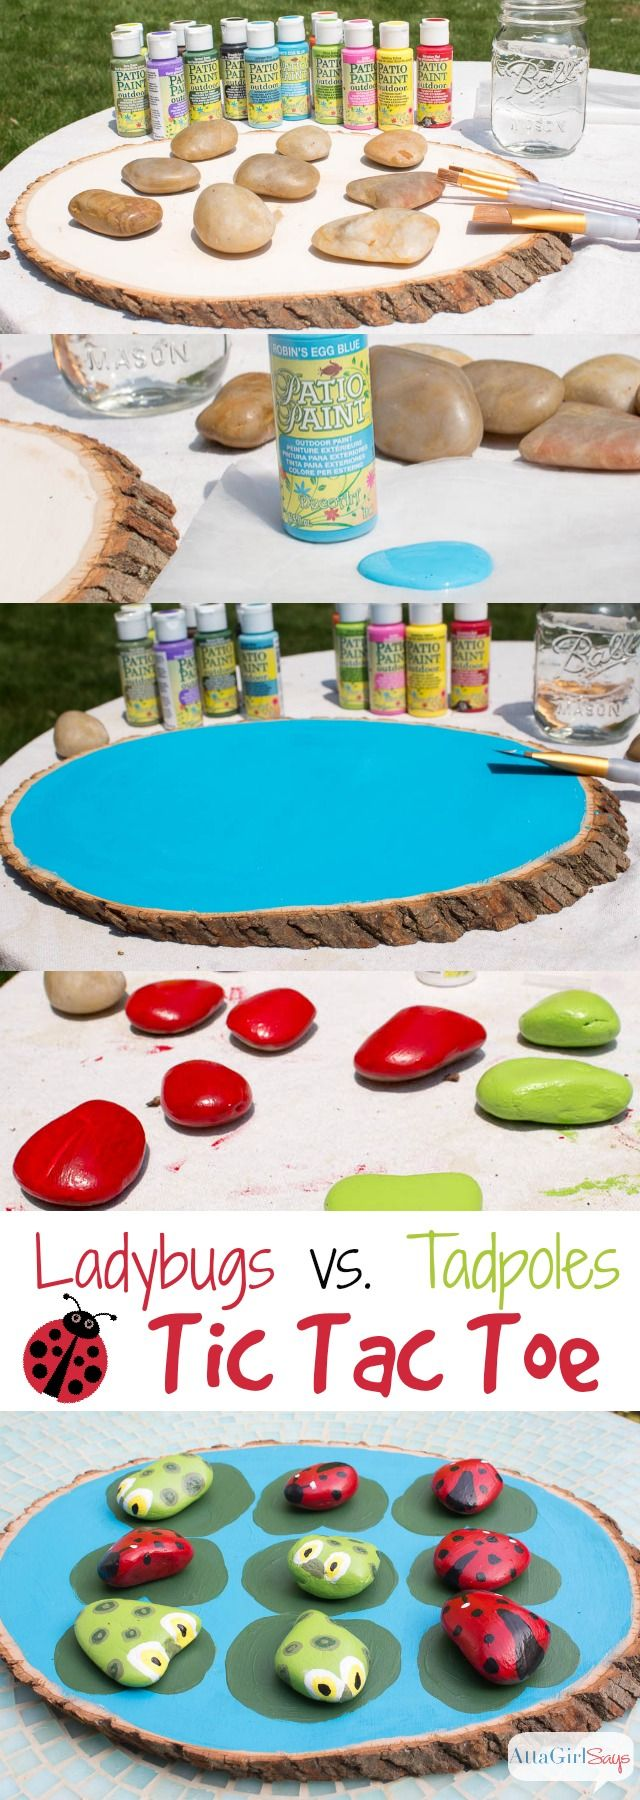 paint your own ladybugs vs tadpoles tic tac toe game tutorial at